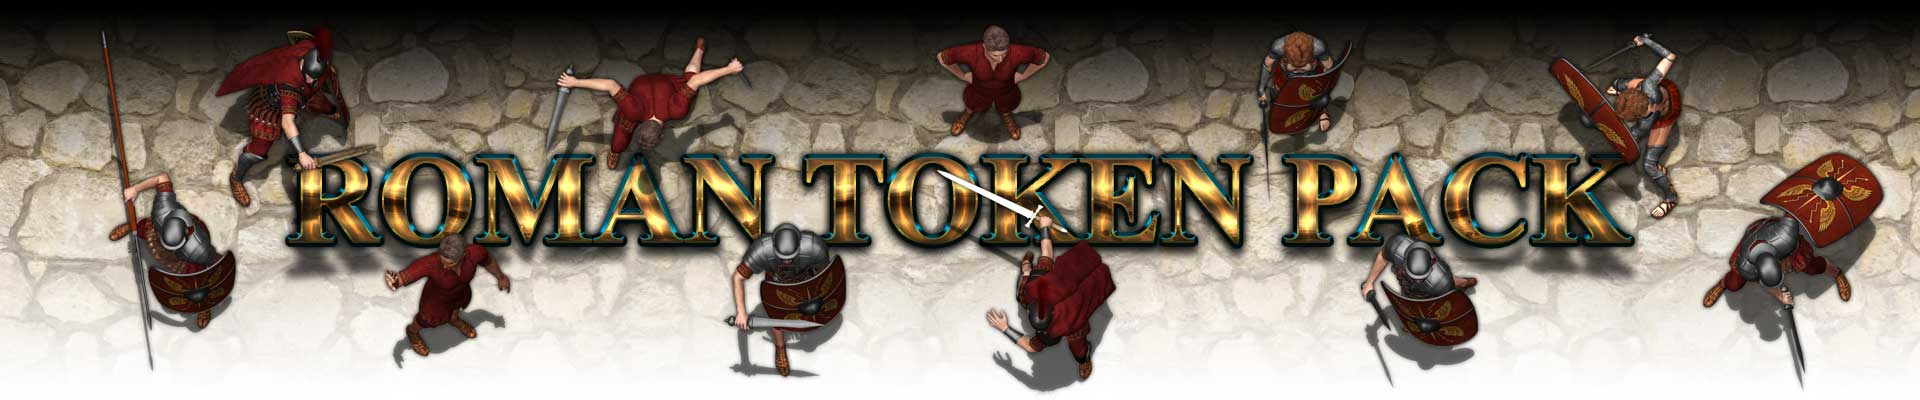 Roman Tokens Pack